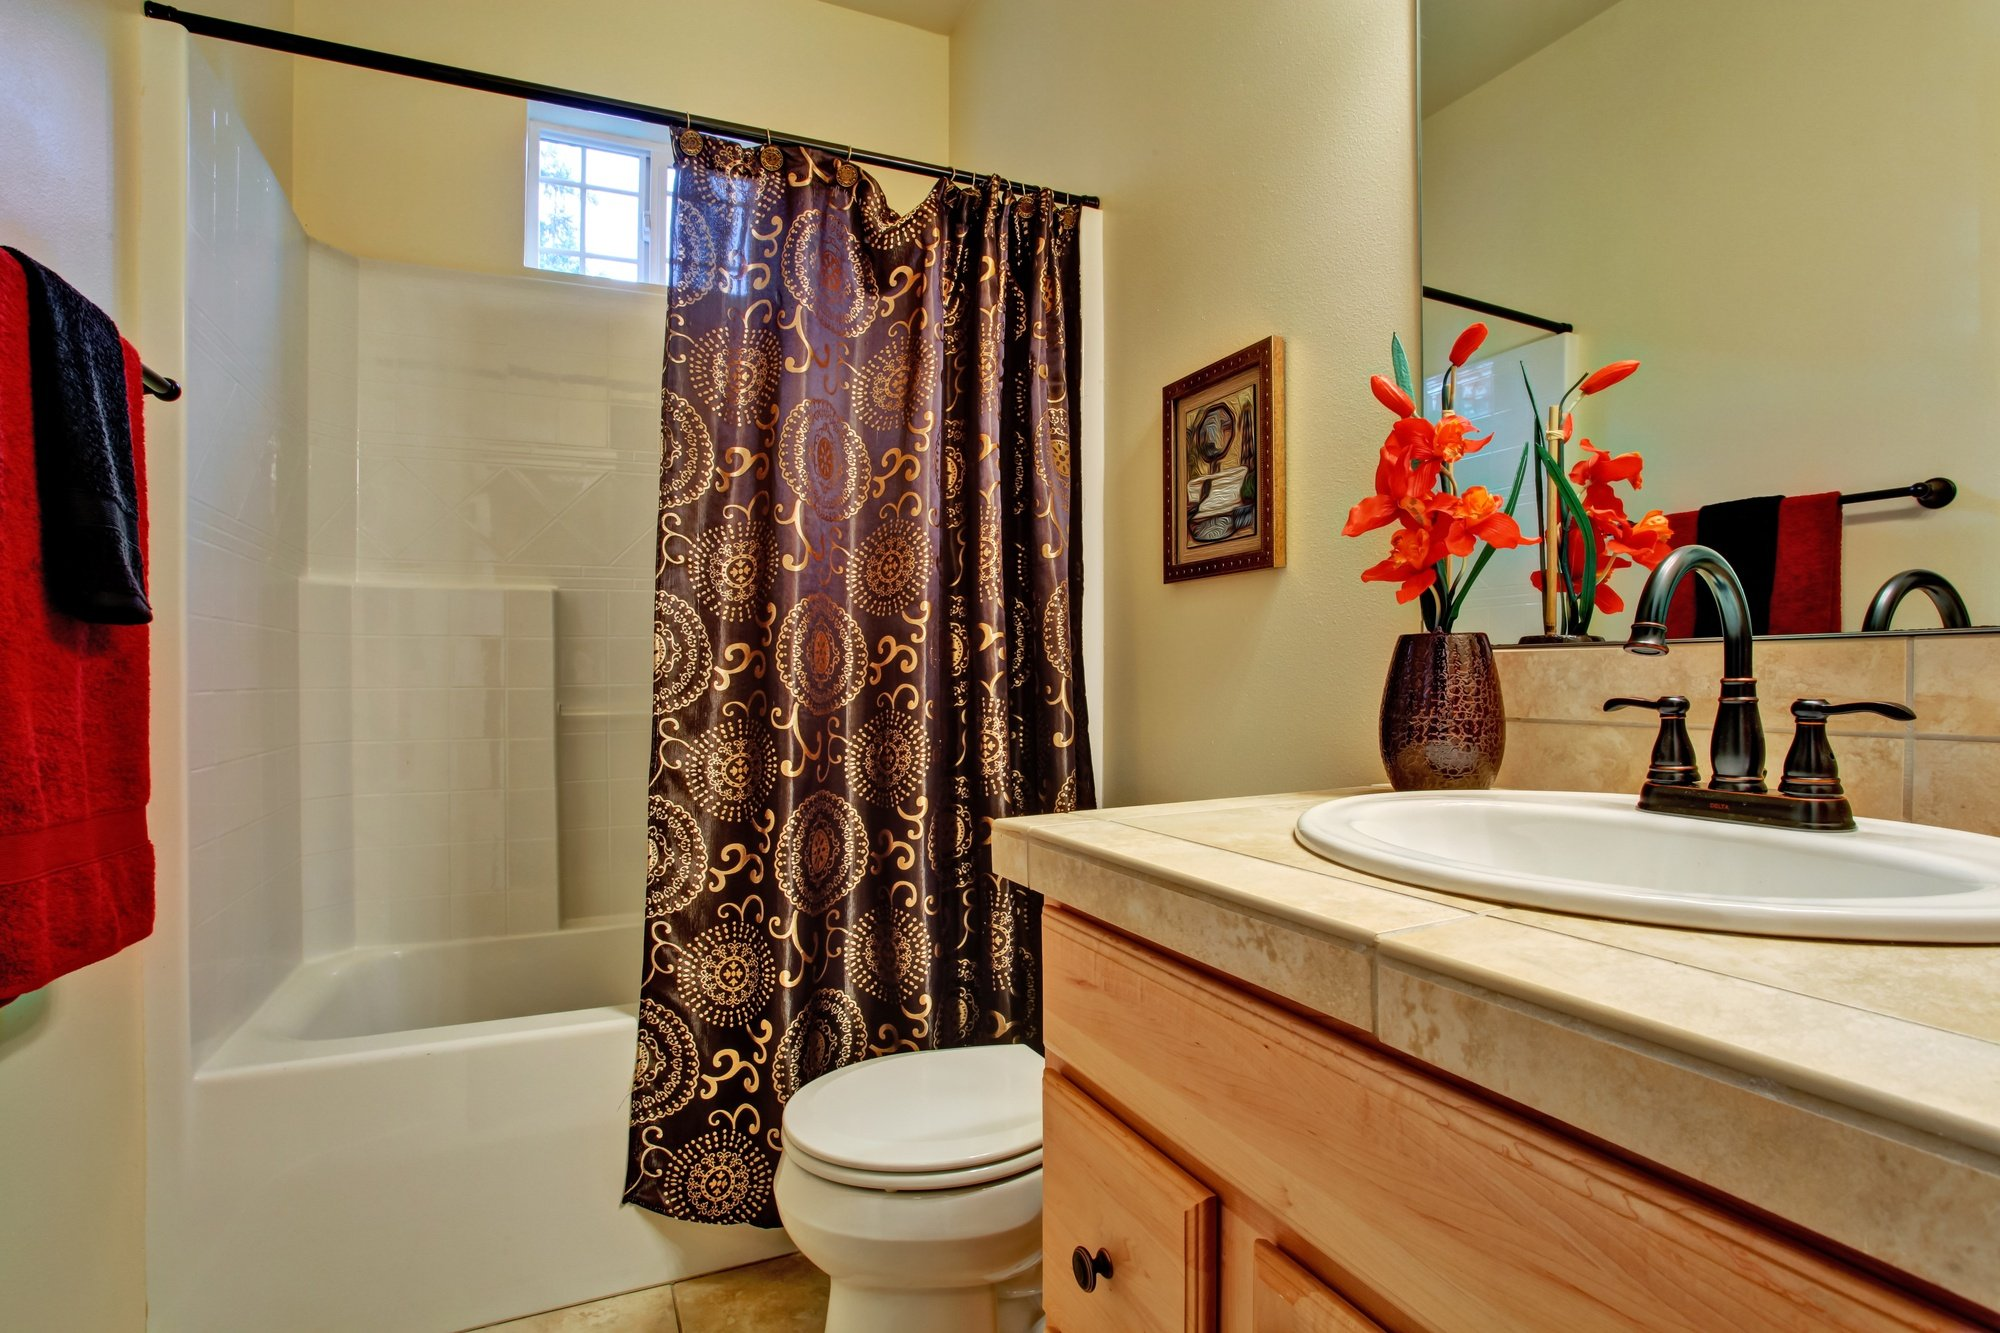 Design Tips for Small Bathrooms